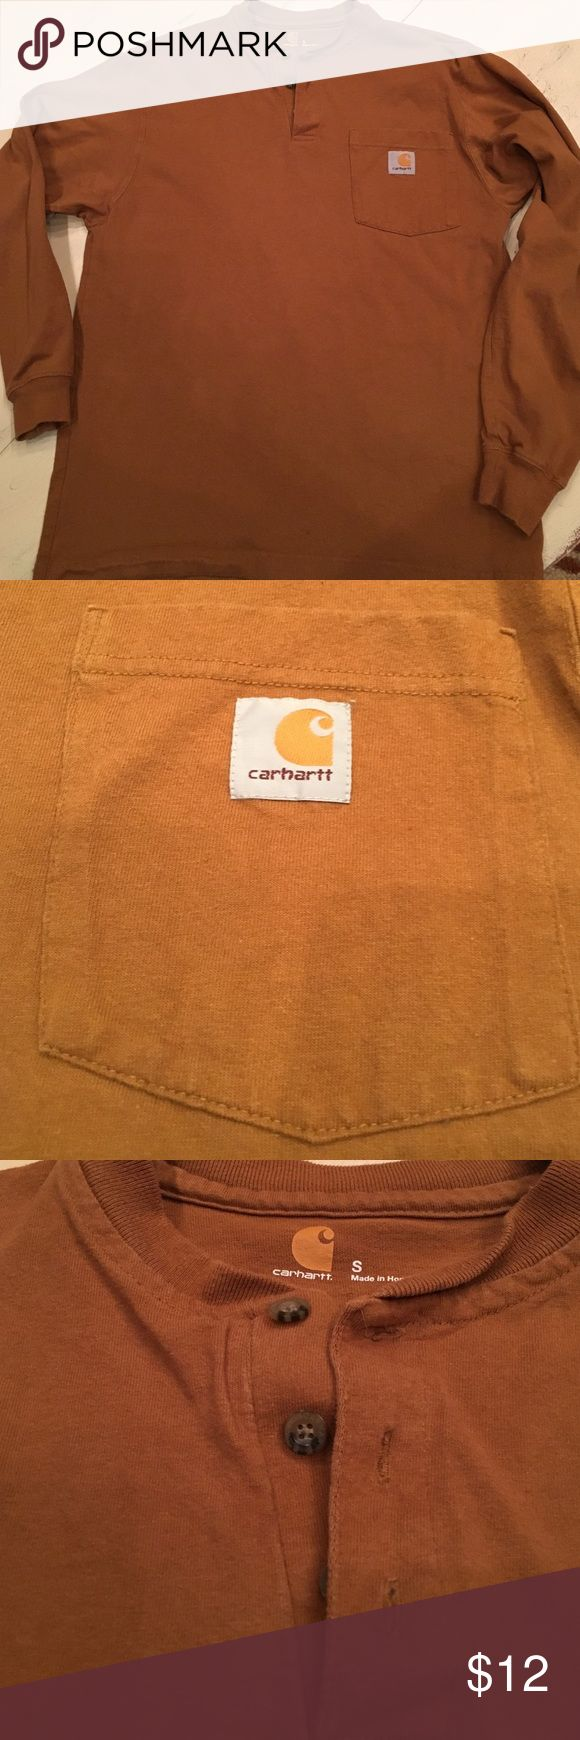 carhartt Shirt carhartt 100 % cotton 2 small holes as shown in picture from belt buckle Carhartt Shirts Tees - Long Sleeve